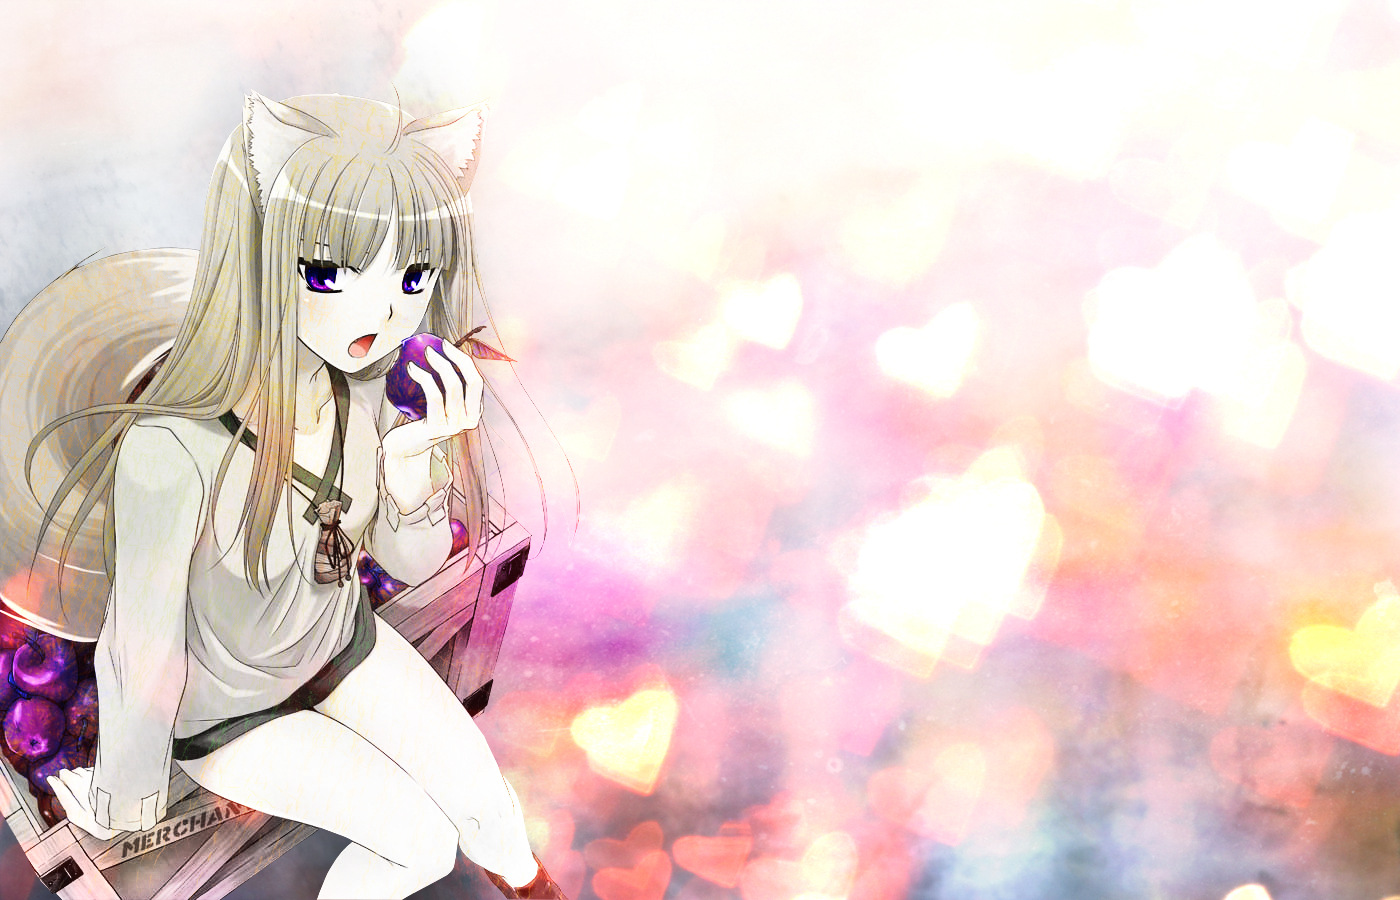 spice and wolf Anime HD Wallpaper